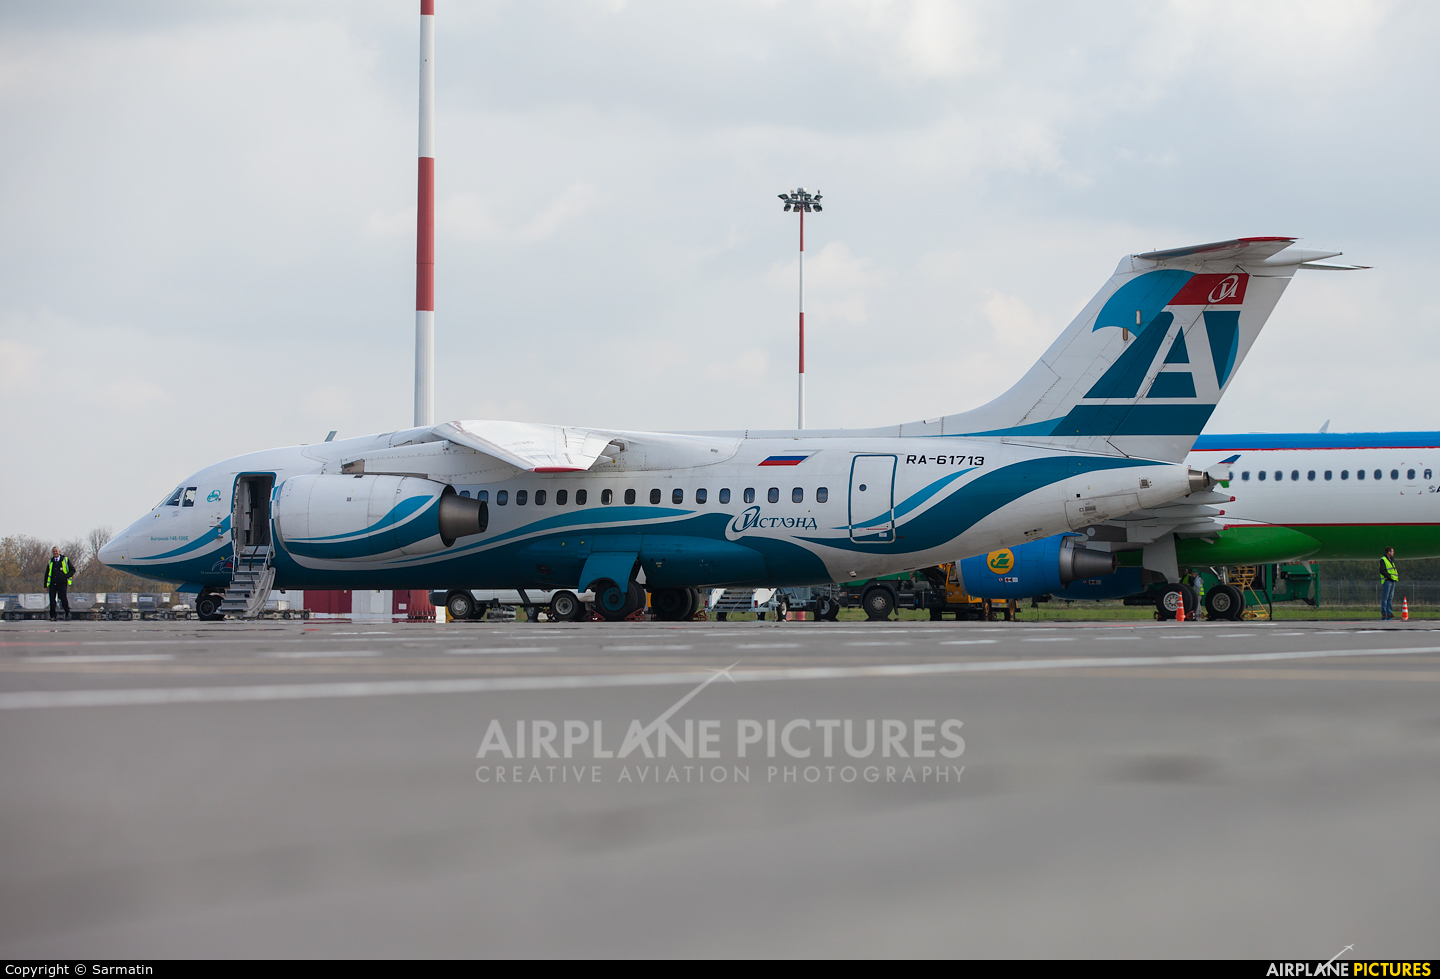 Angara Airlines RA-61713 aircraft at Kazan